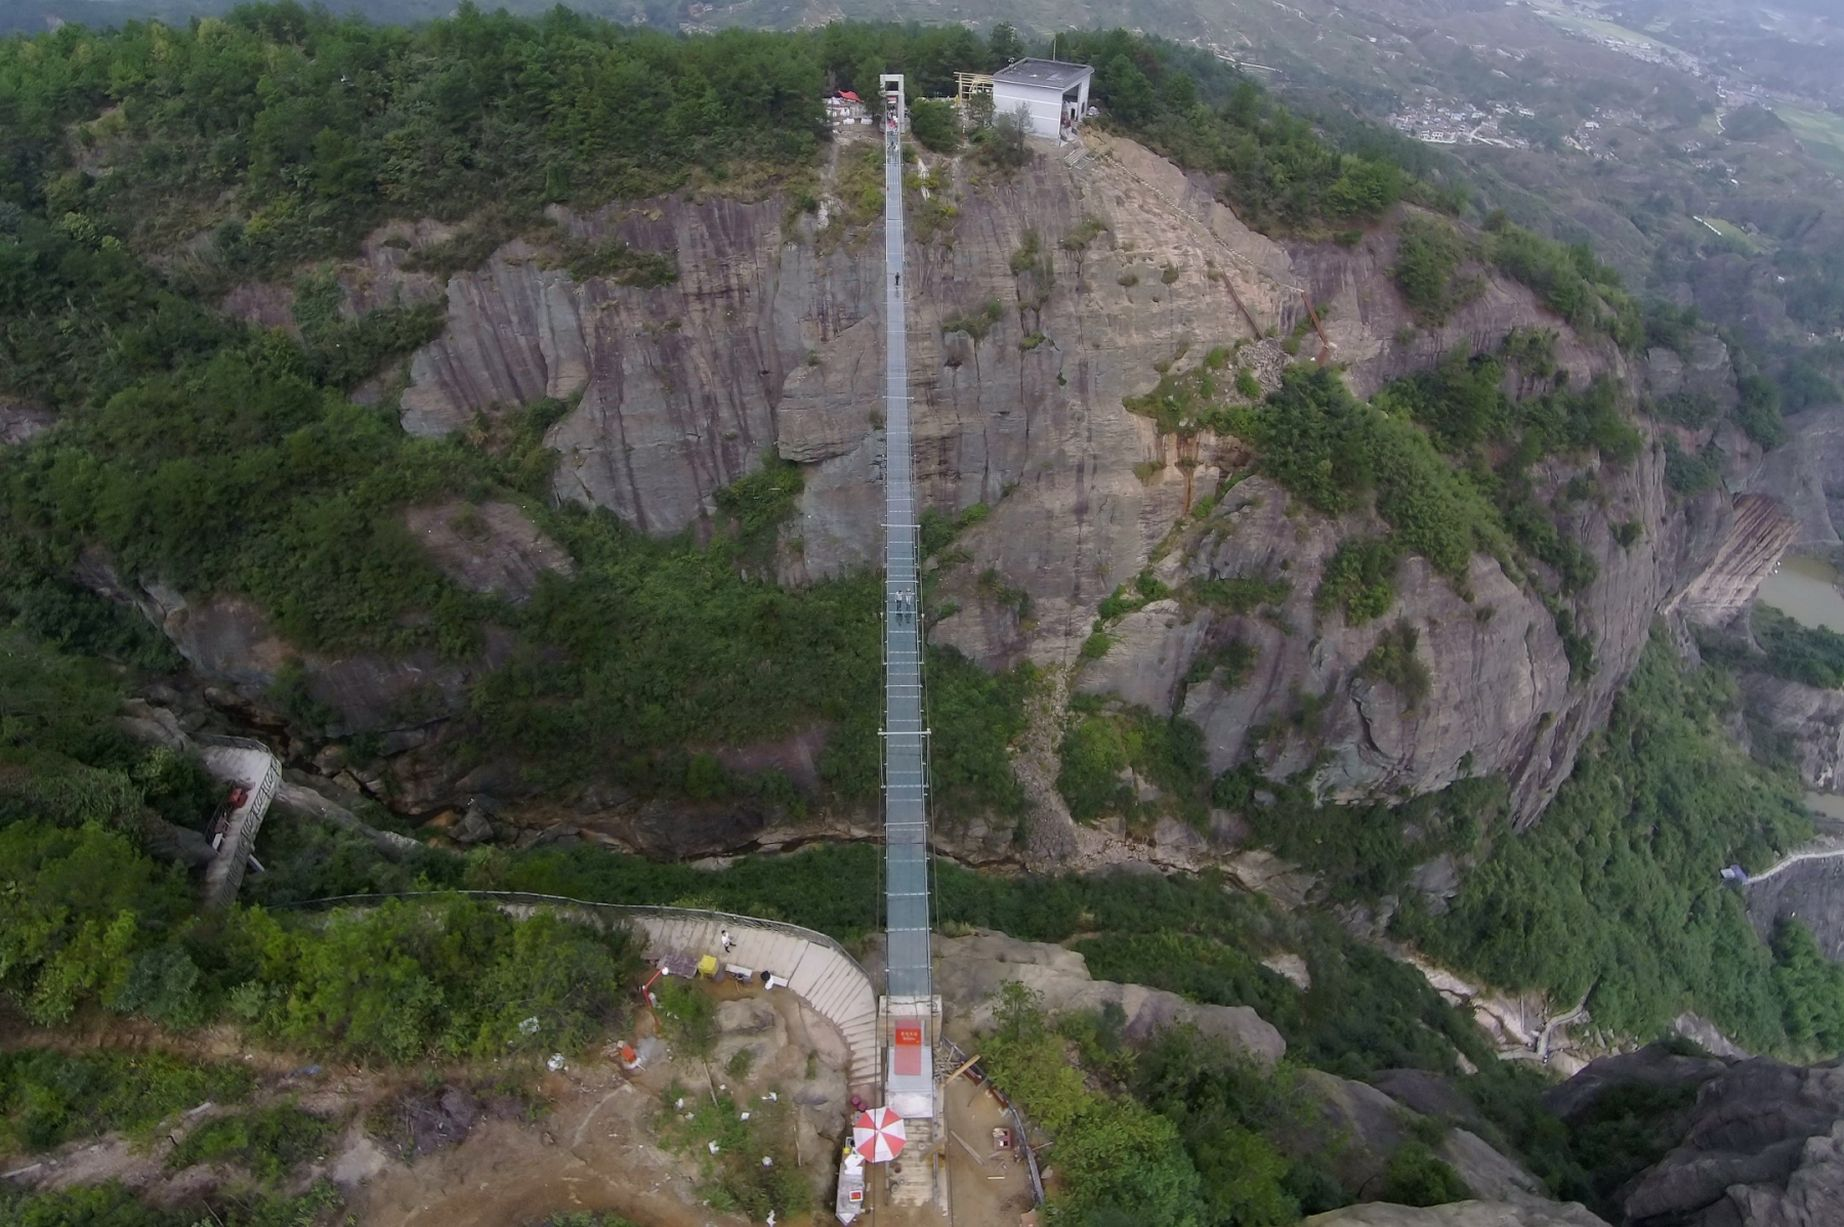 13 Pics Of A Glass Bridge That Strikes Fear In Tourists' Hearts 5